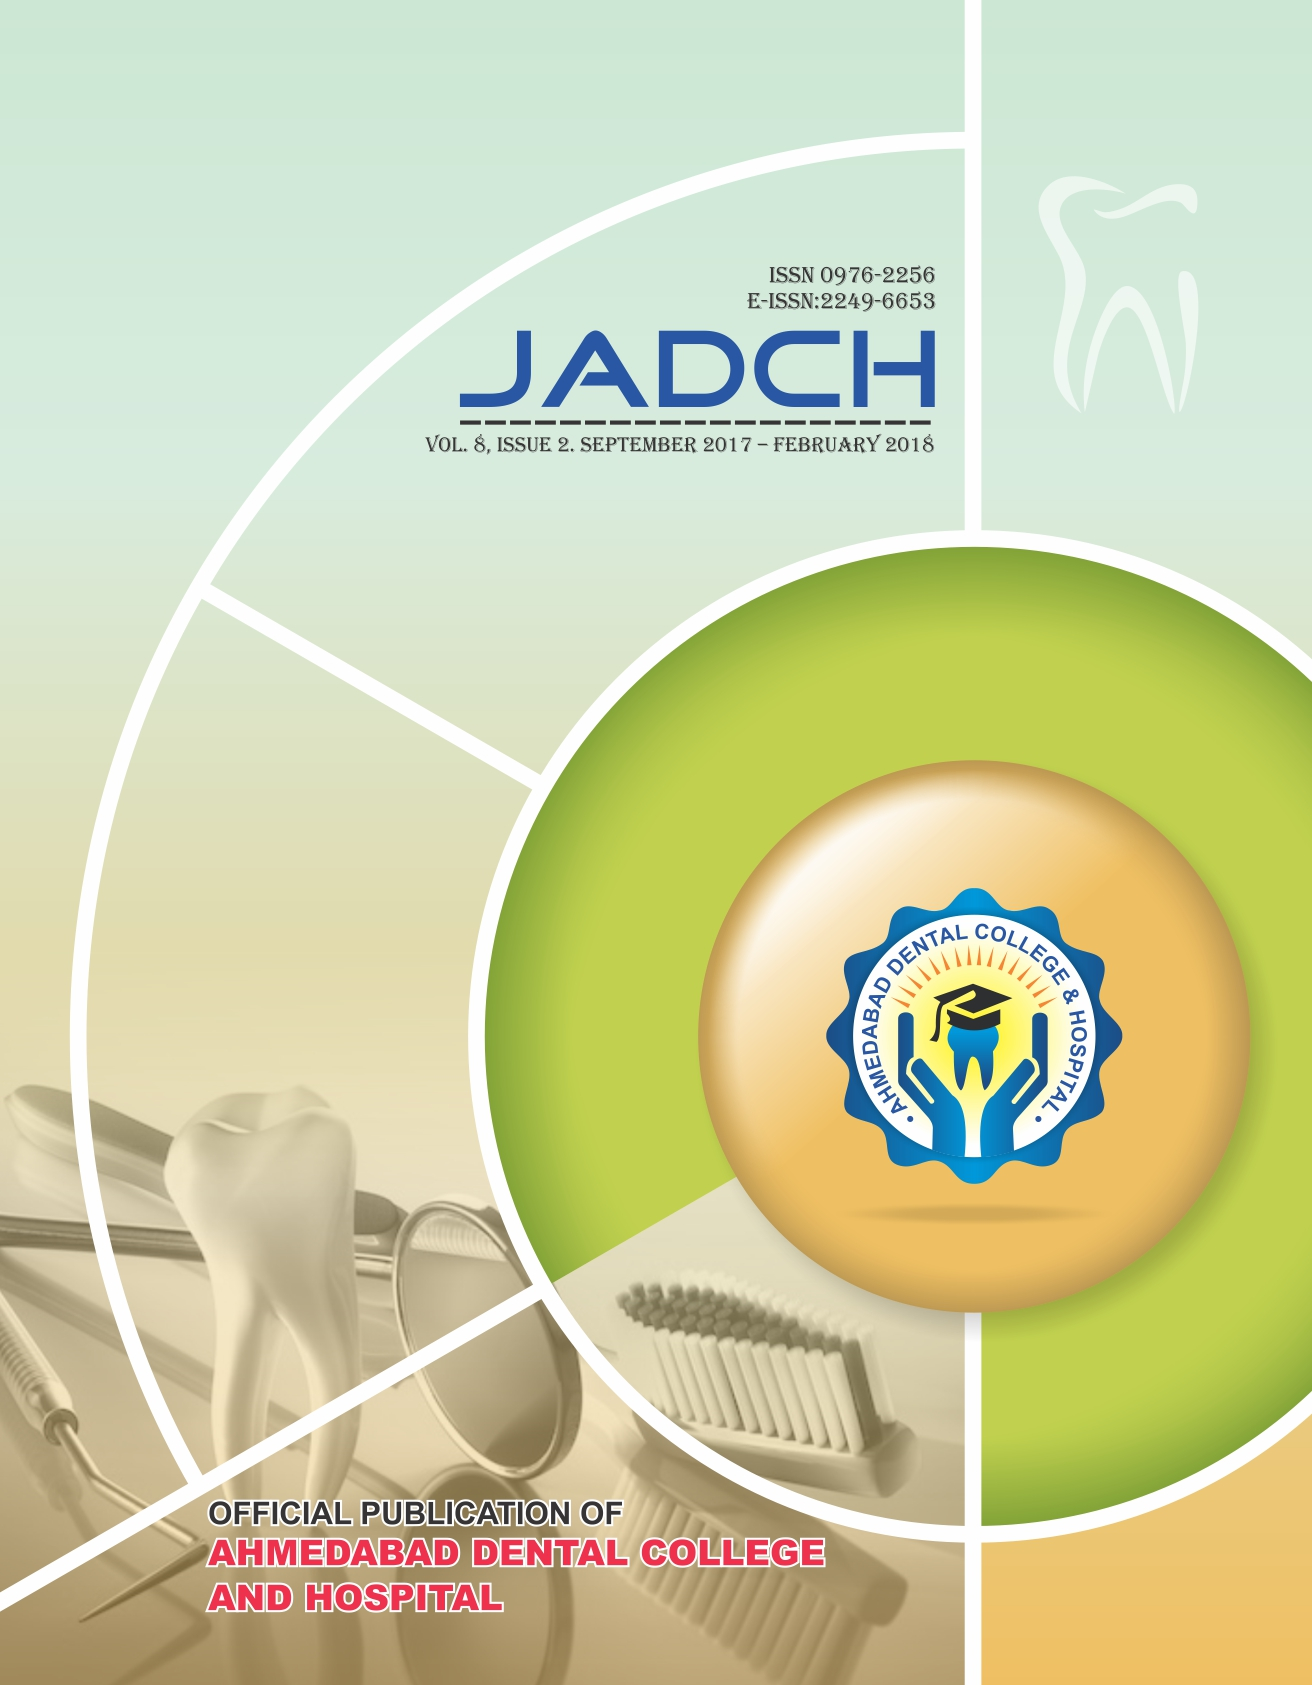 ADCH Journal - Vol 8 - Issue 2